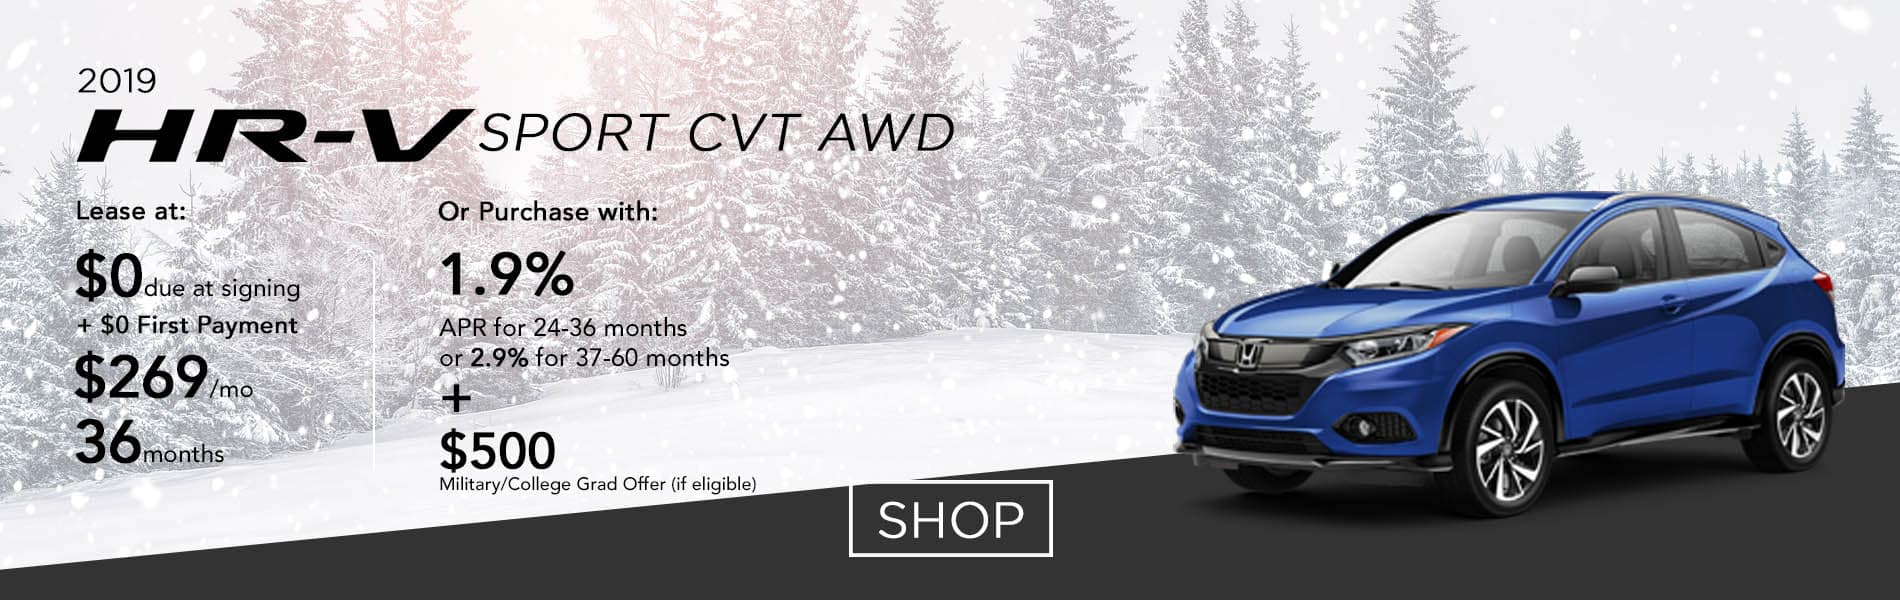 Lease a 2019 HR-V LX CVT AWD for $269 per month or purchase with 1.9% APR up to 36 months